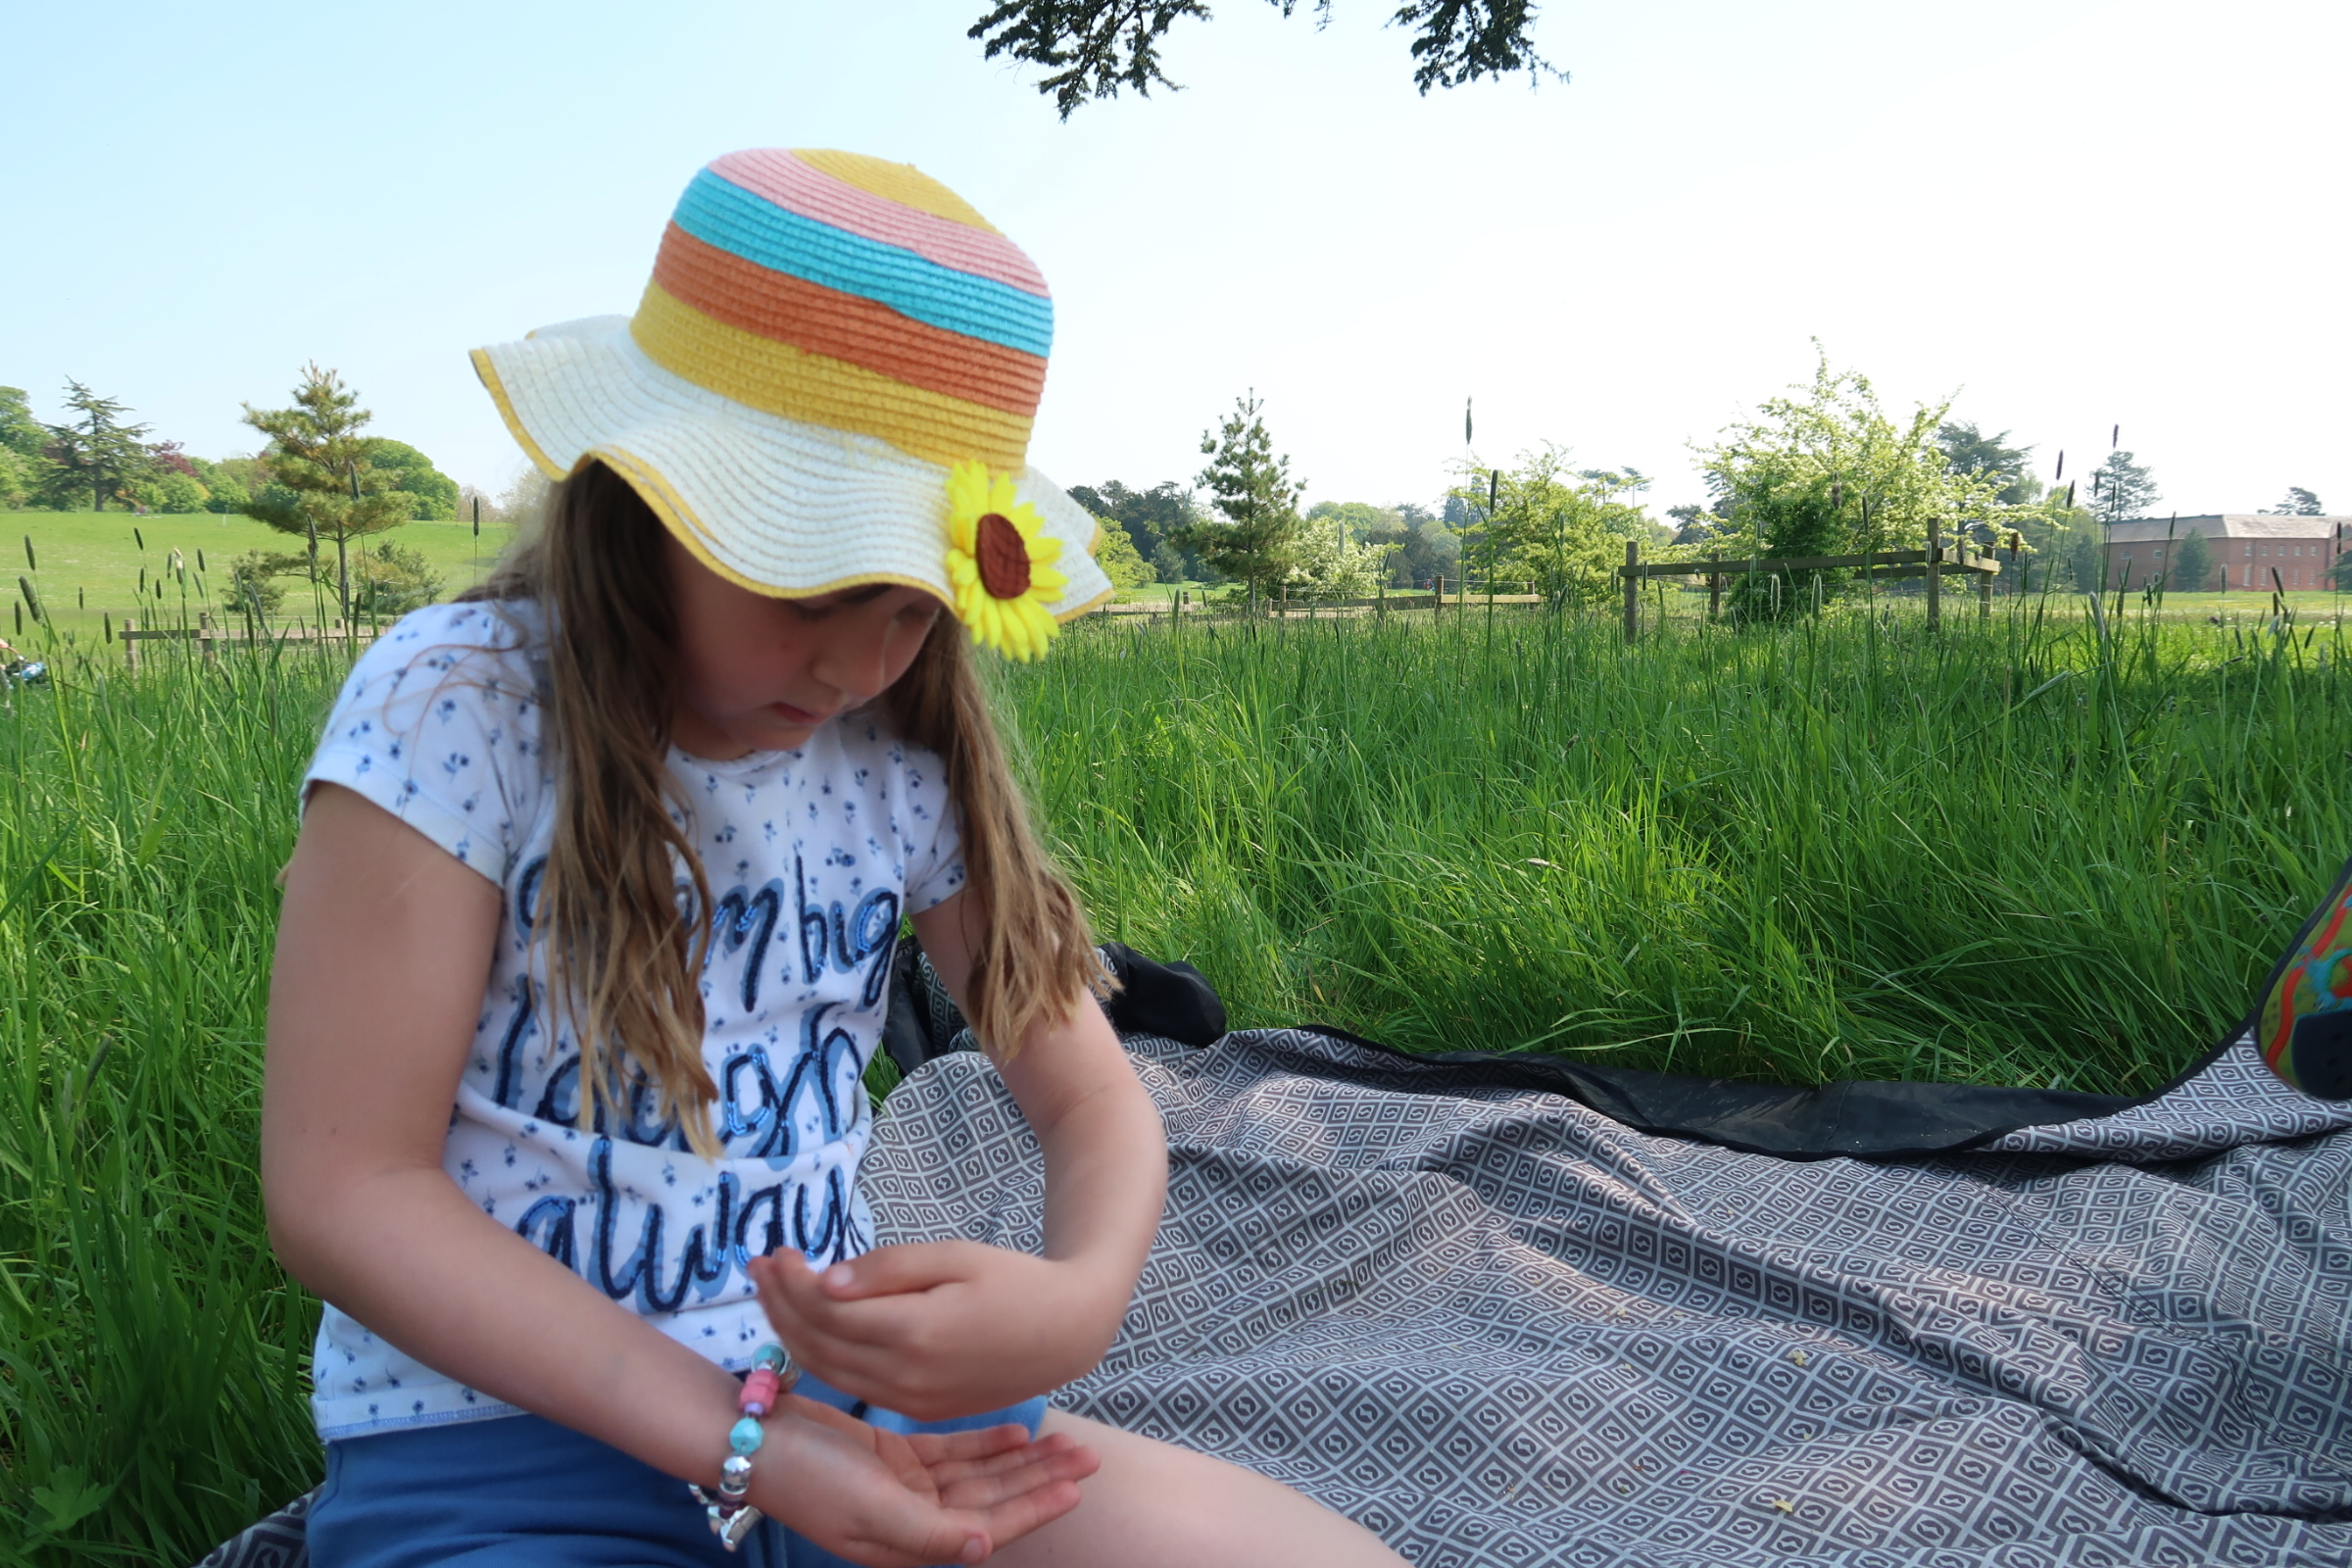 My daughter sat close to the camera on the left side of the frame wearing a bright coloured, striped straw sun hat with a sunflower on. She is on a blanket in a meadow of long, lush green grass, intently studying a tiny beetle that landed on her hand. It's sunny and the sky is blue.